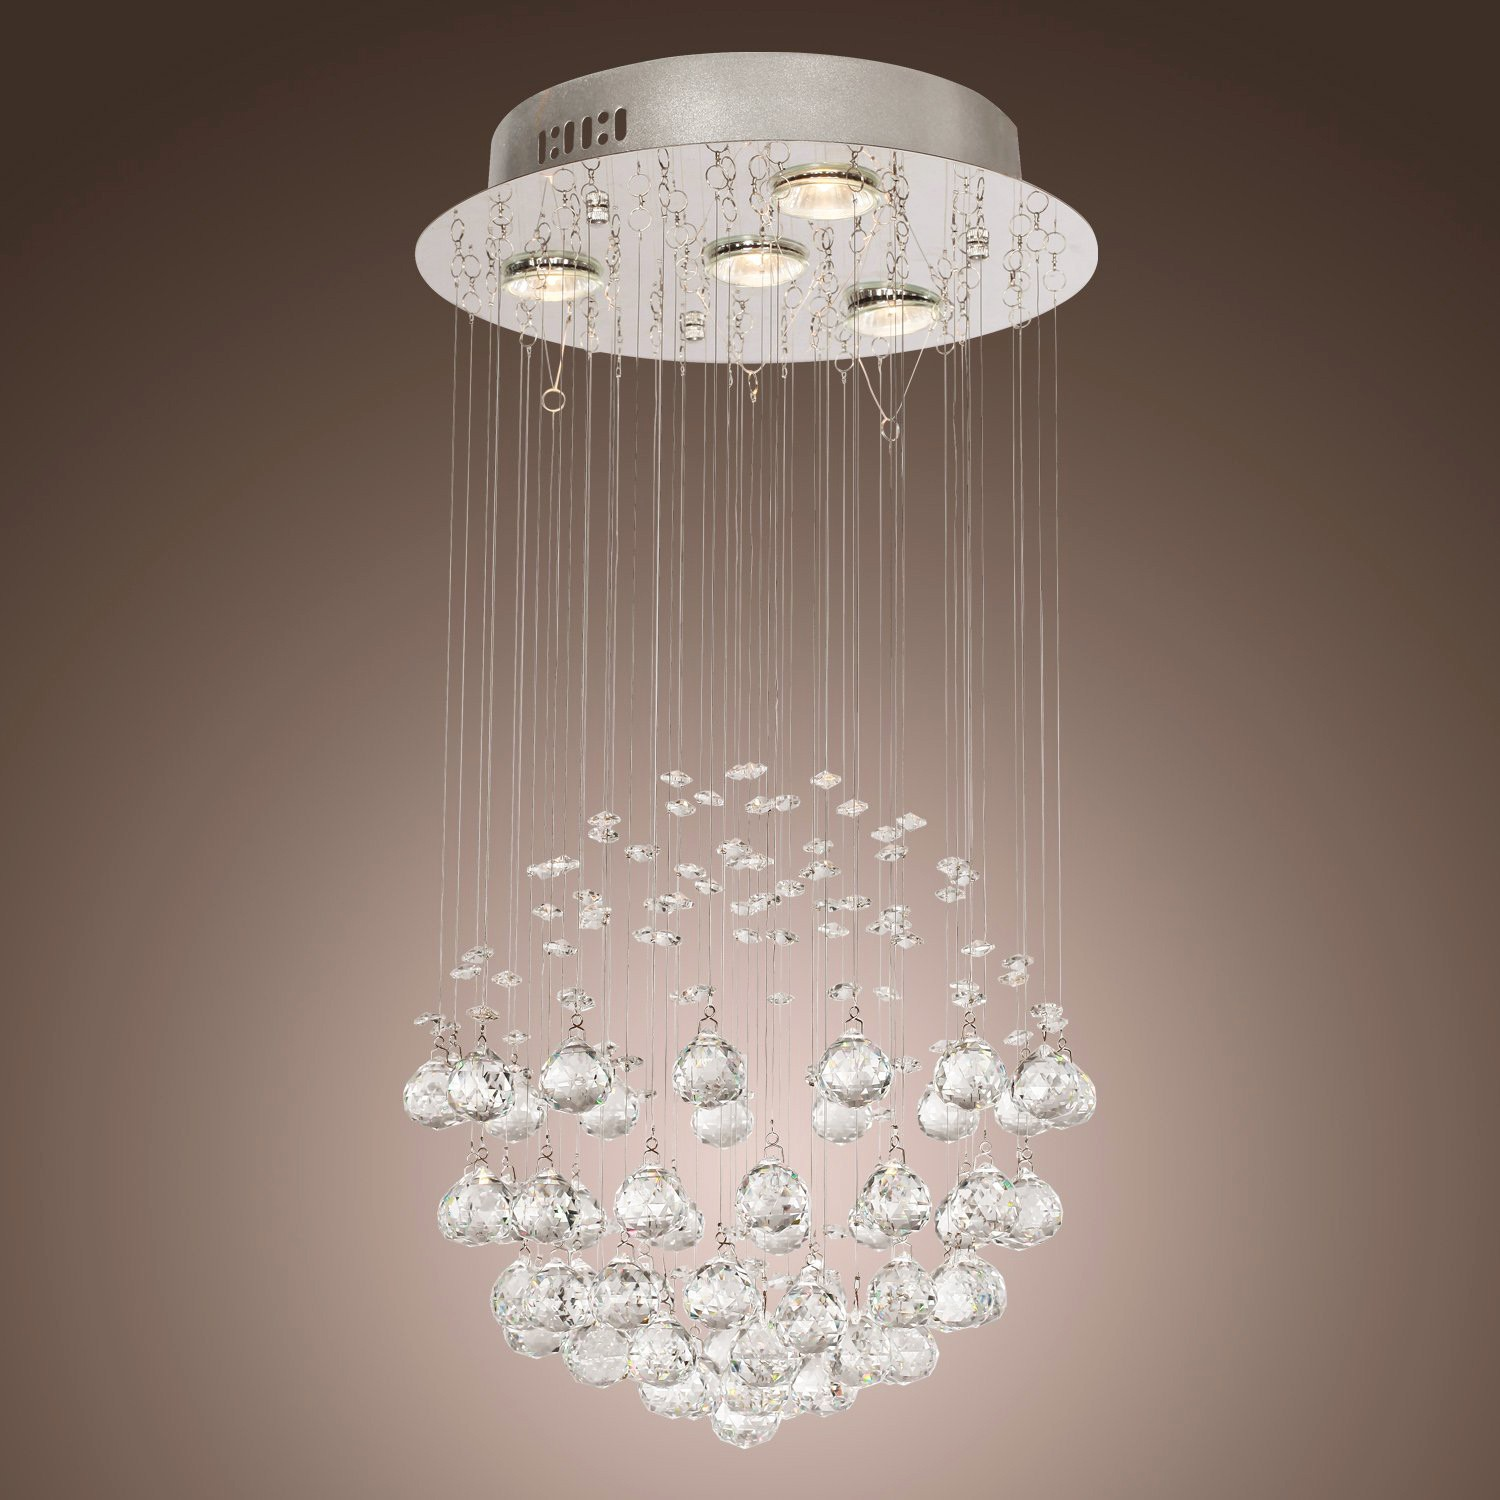 Best 4 light globe shaped cascading crystal ceiling lighting flush mount 4 light globe shaped cascading crystal ceiling lighting flush mount aloadofball Choice Image